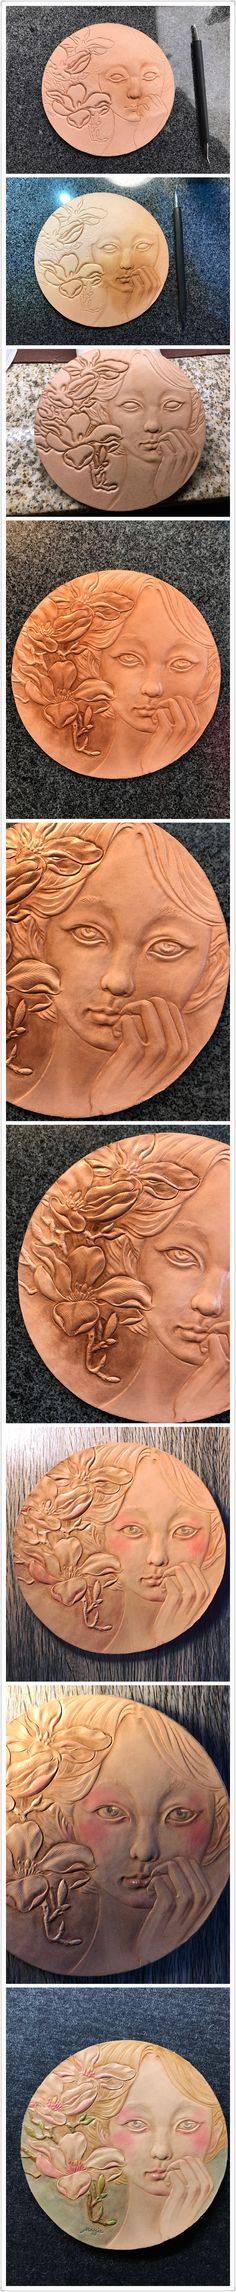 The procedure of spring girl leather carving #Leather #carving